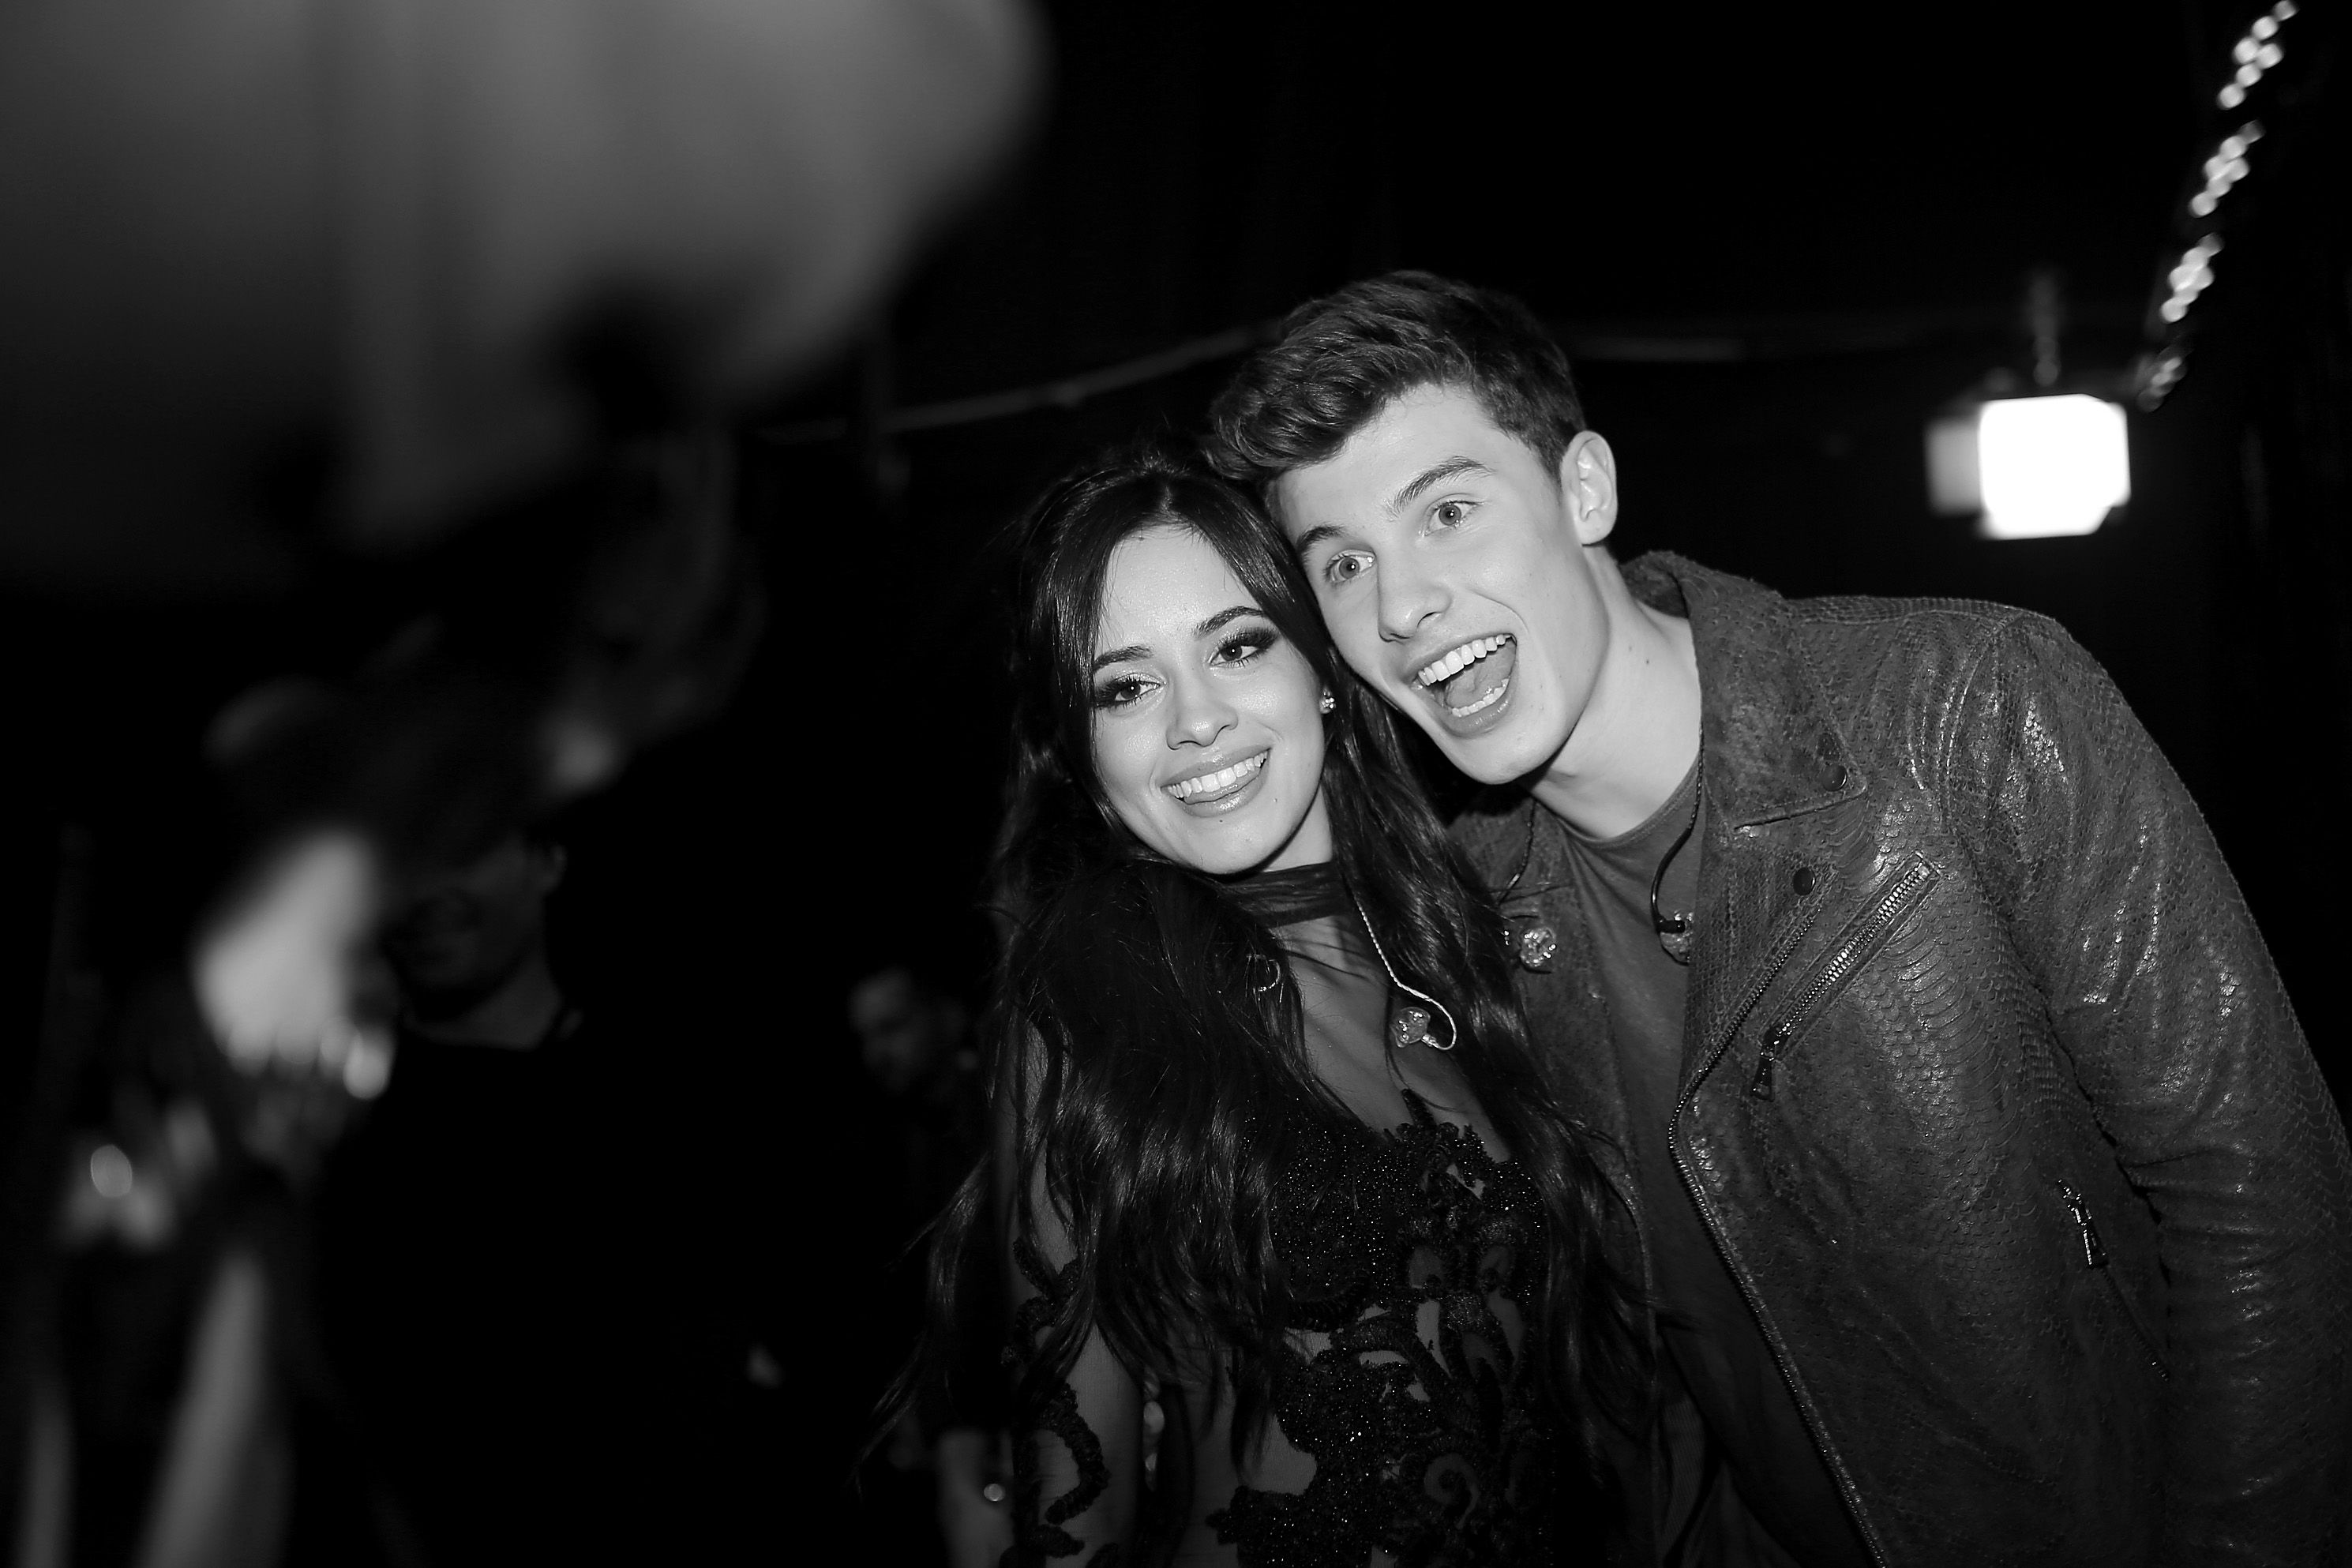 It Sure Looks Like Shawn Mendes and Camila Cabello Are Releasing a New Song Together and I've Never Been More Excited